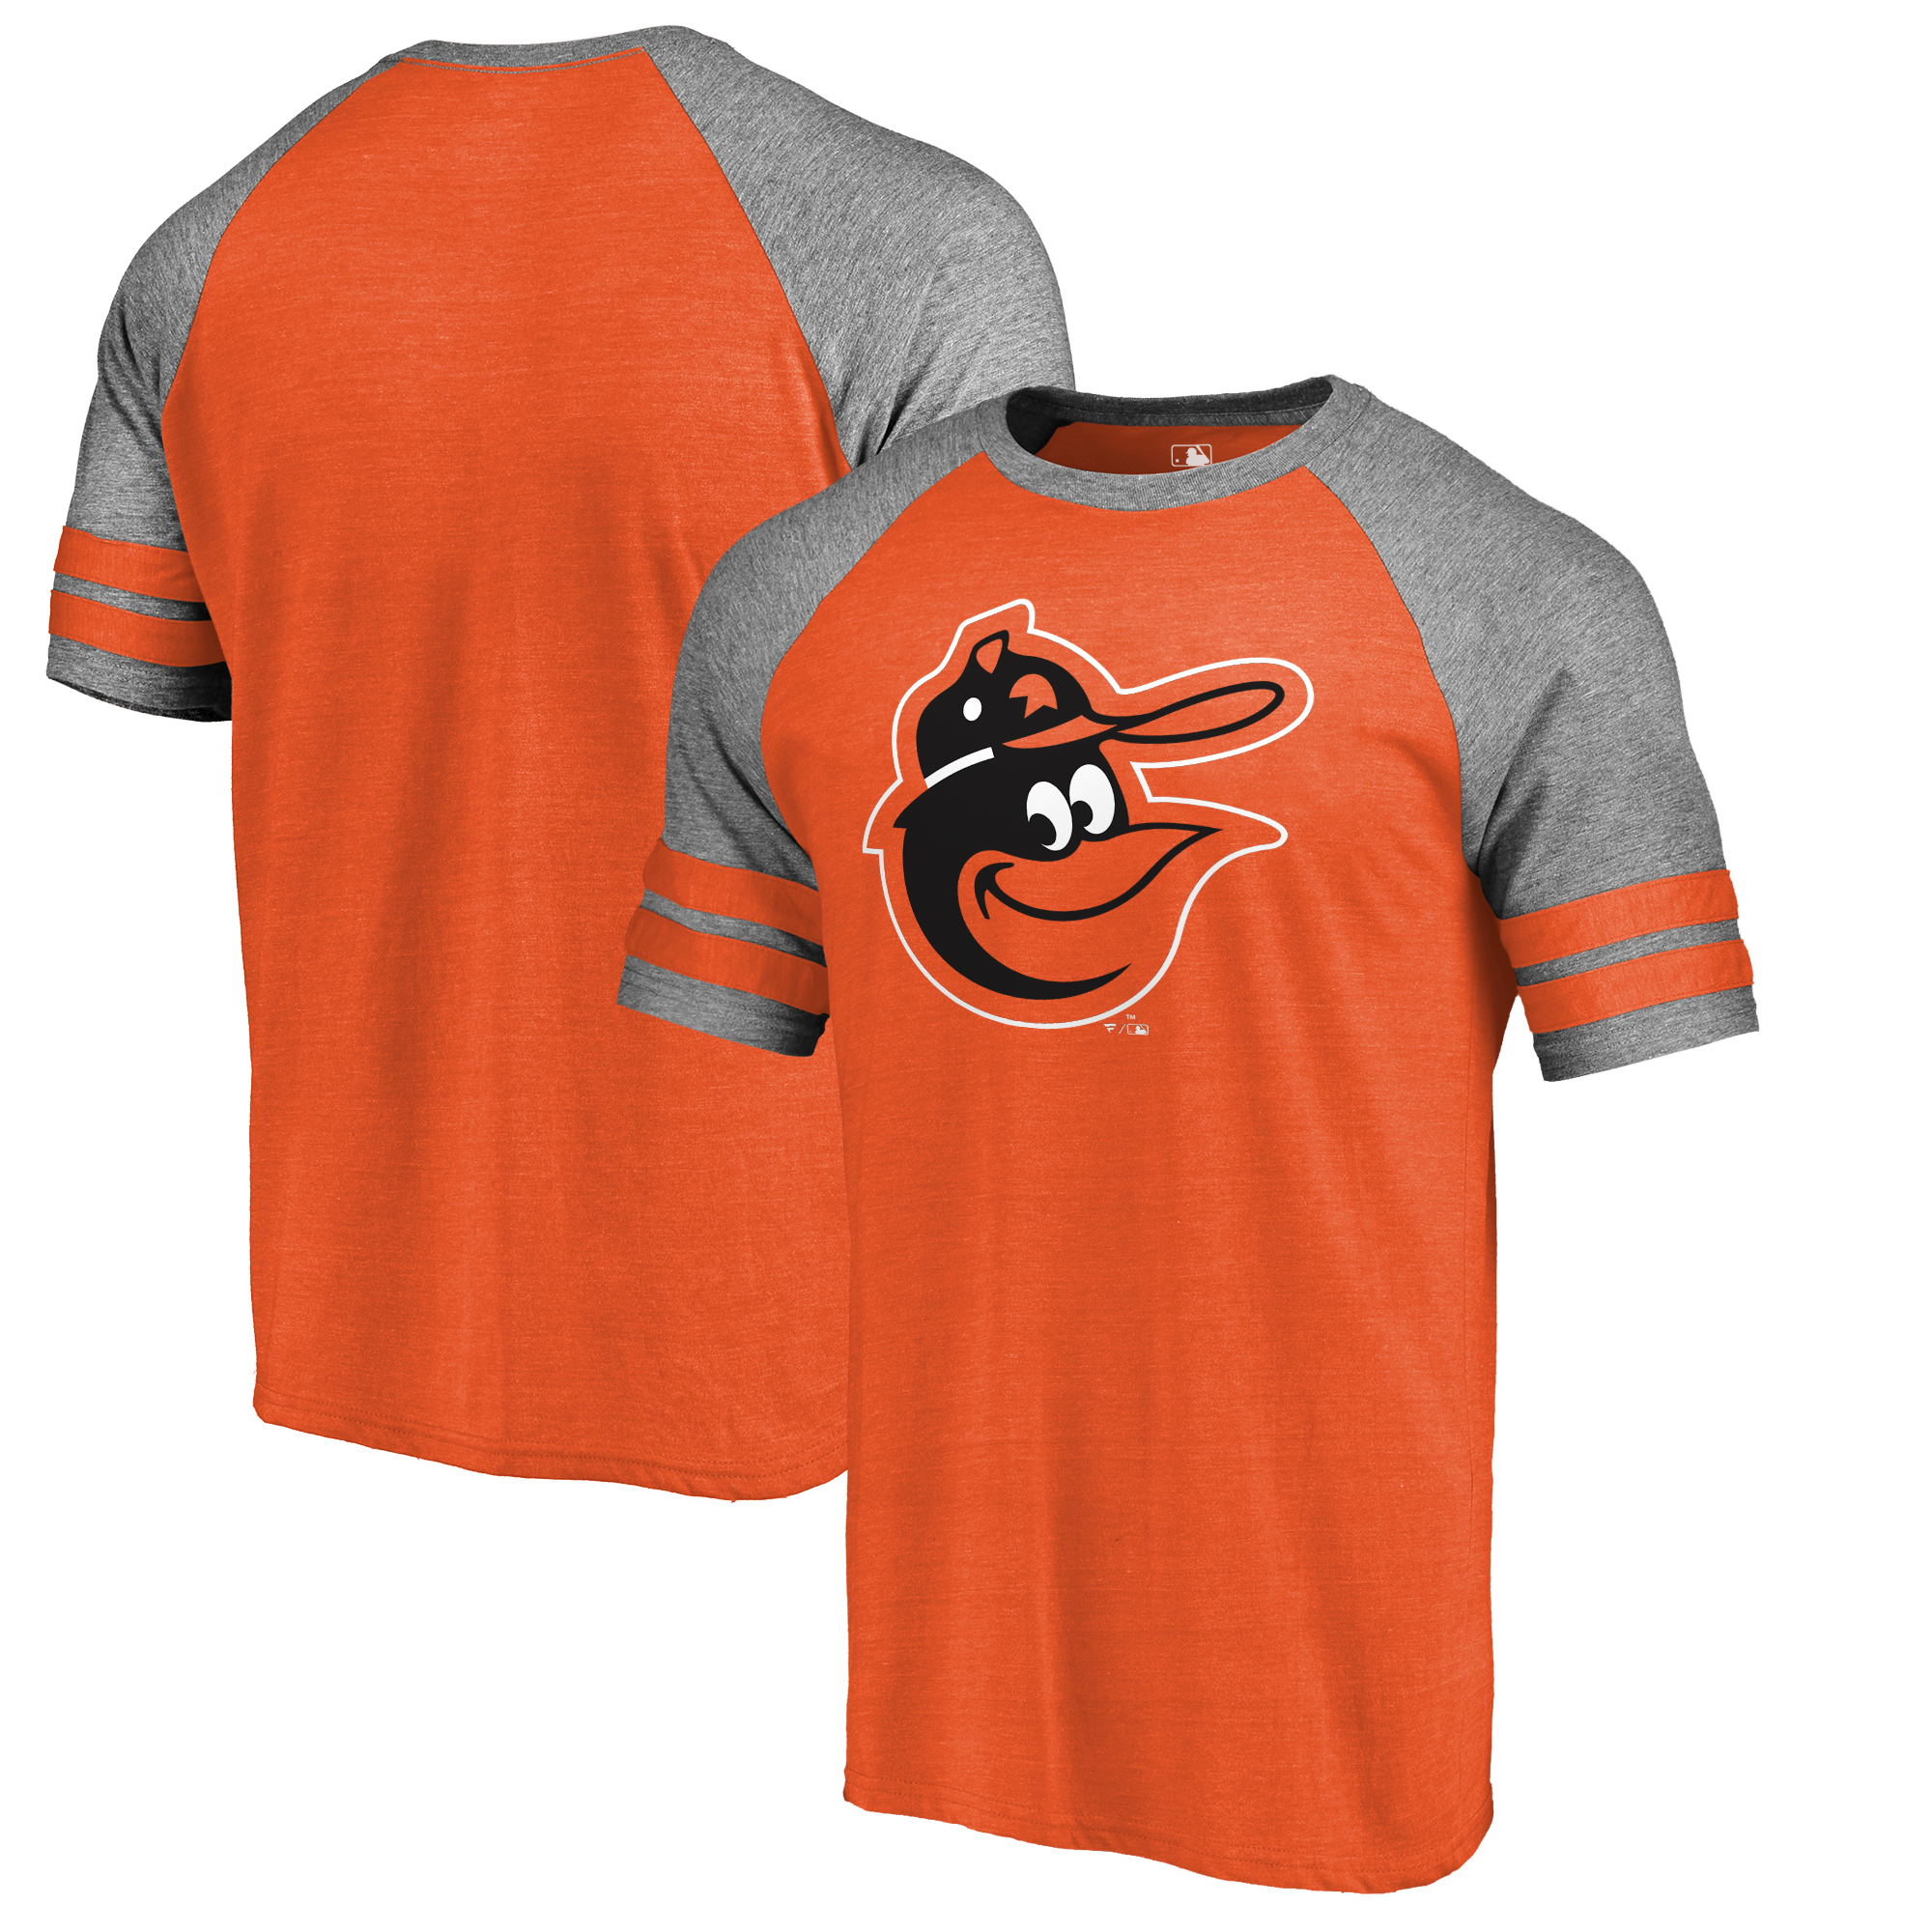 Baltimore Orioles Fanatics Branded Huntington Cooperstown Collection Tri-Blend T-Shirt - Orange